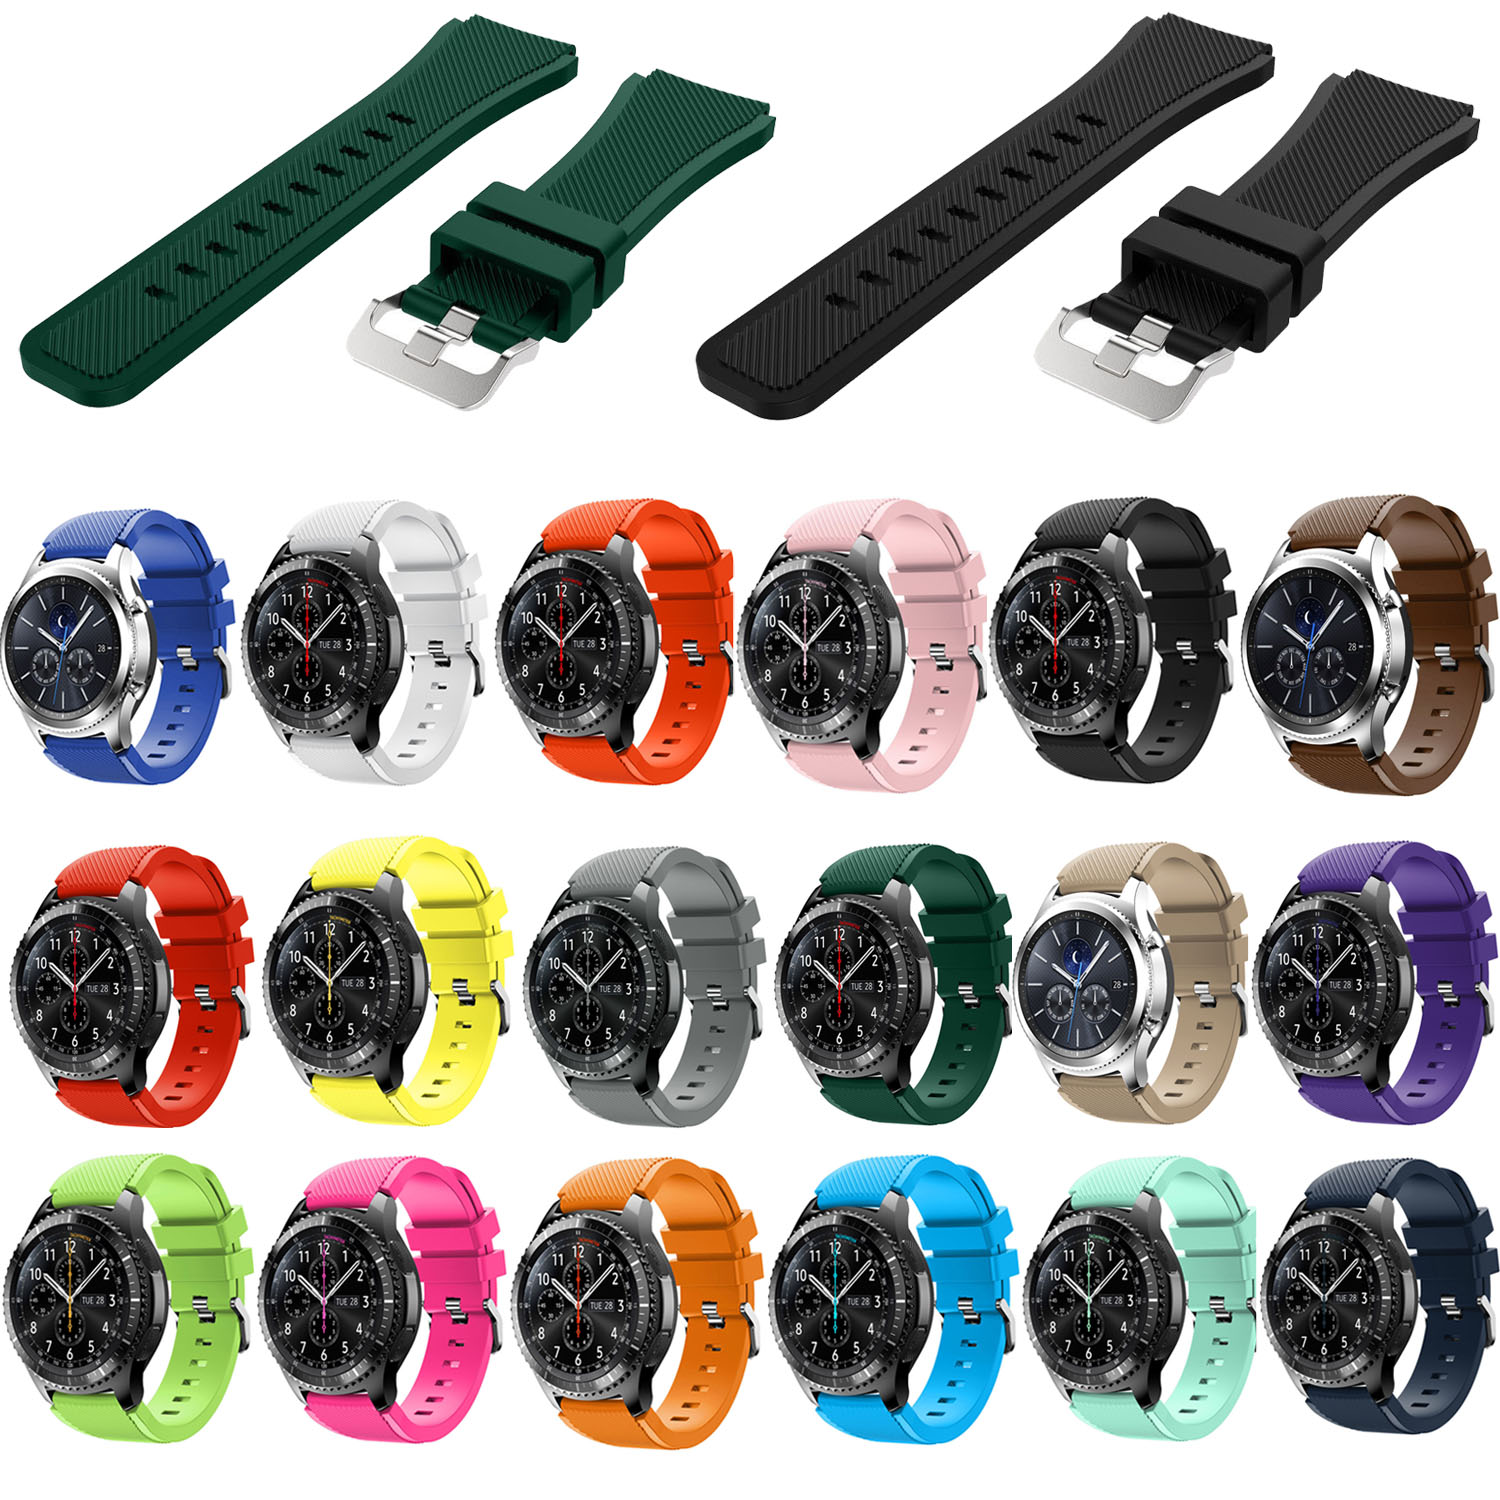 18 Colors Rubber Wrist Strap for Samsung Gear S3 Frontier Silicone Watch Band for Samsung Gear S3 Classic Bracelet Band 22mm crested sport silicone strap for samsung gear s3 classic frontier replacement rubber band watch strap for samsung gear s3